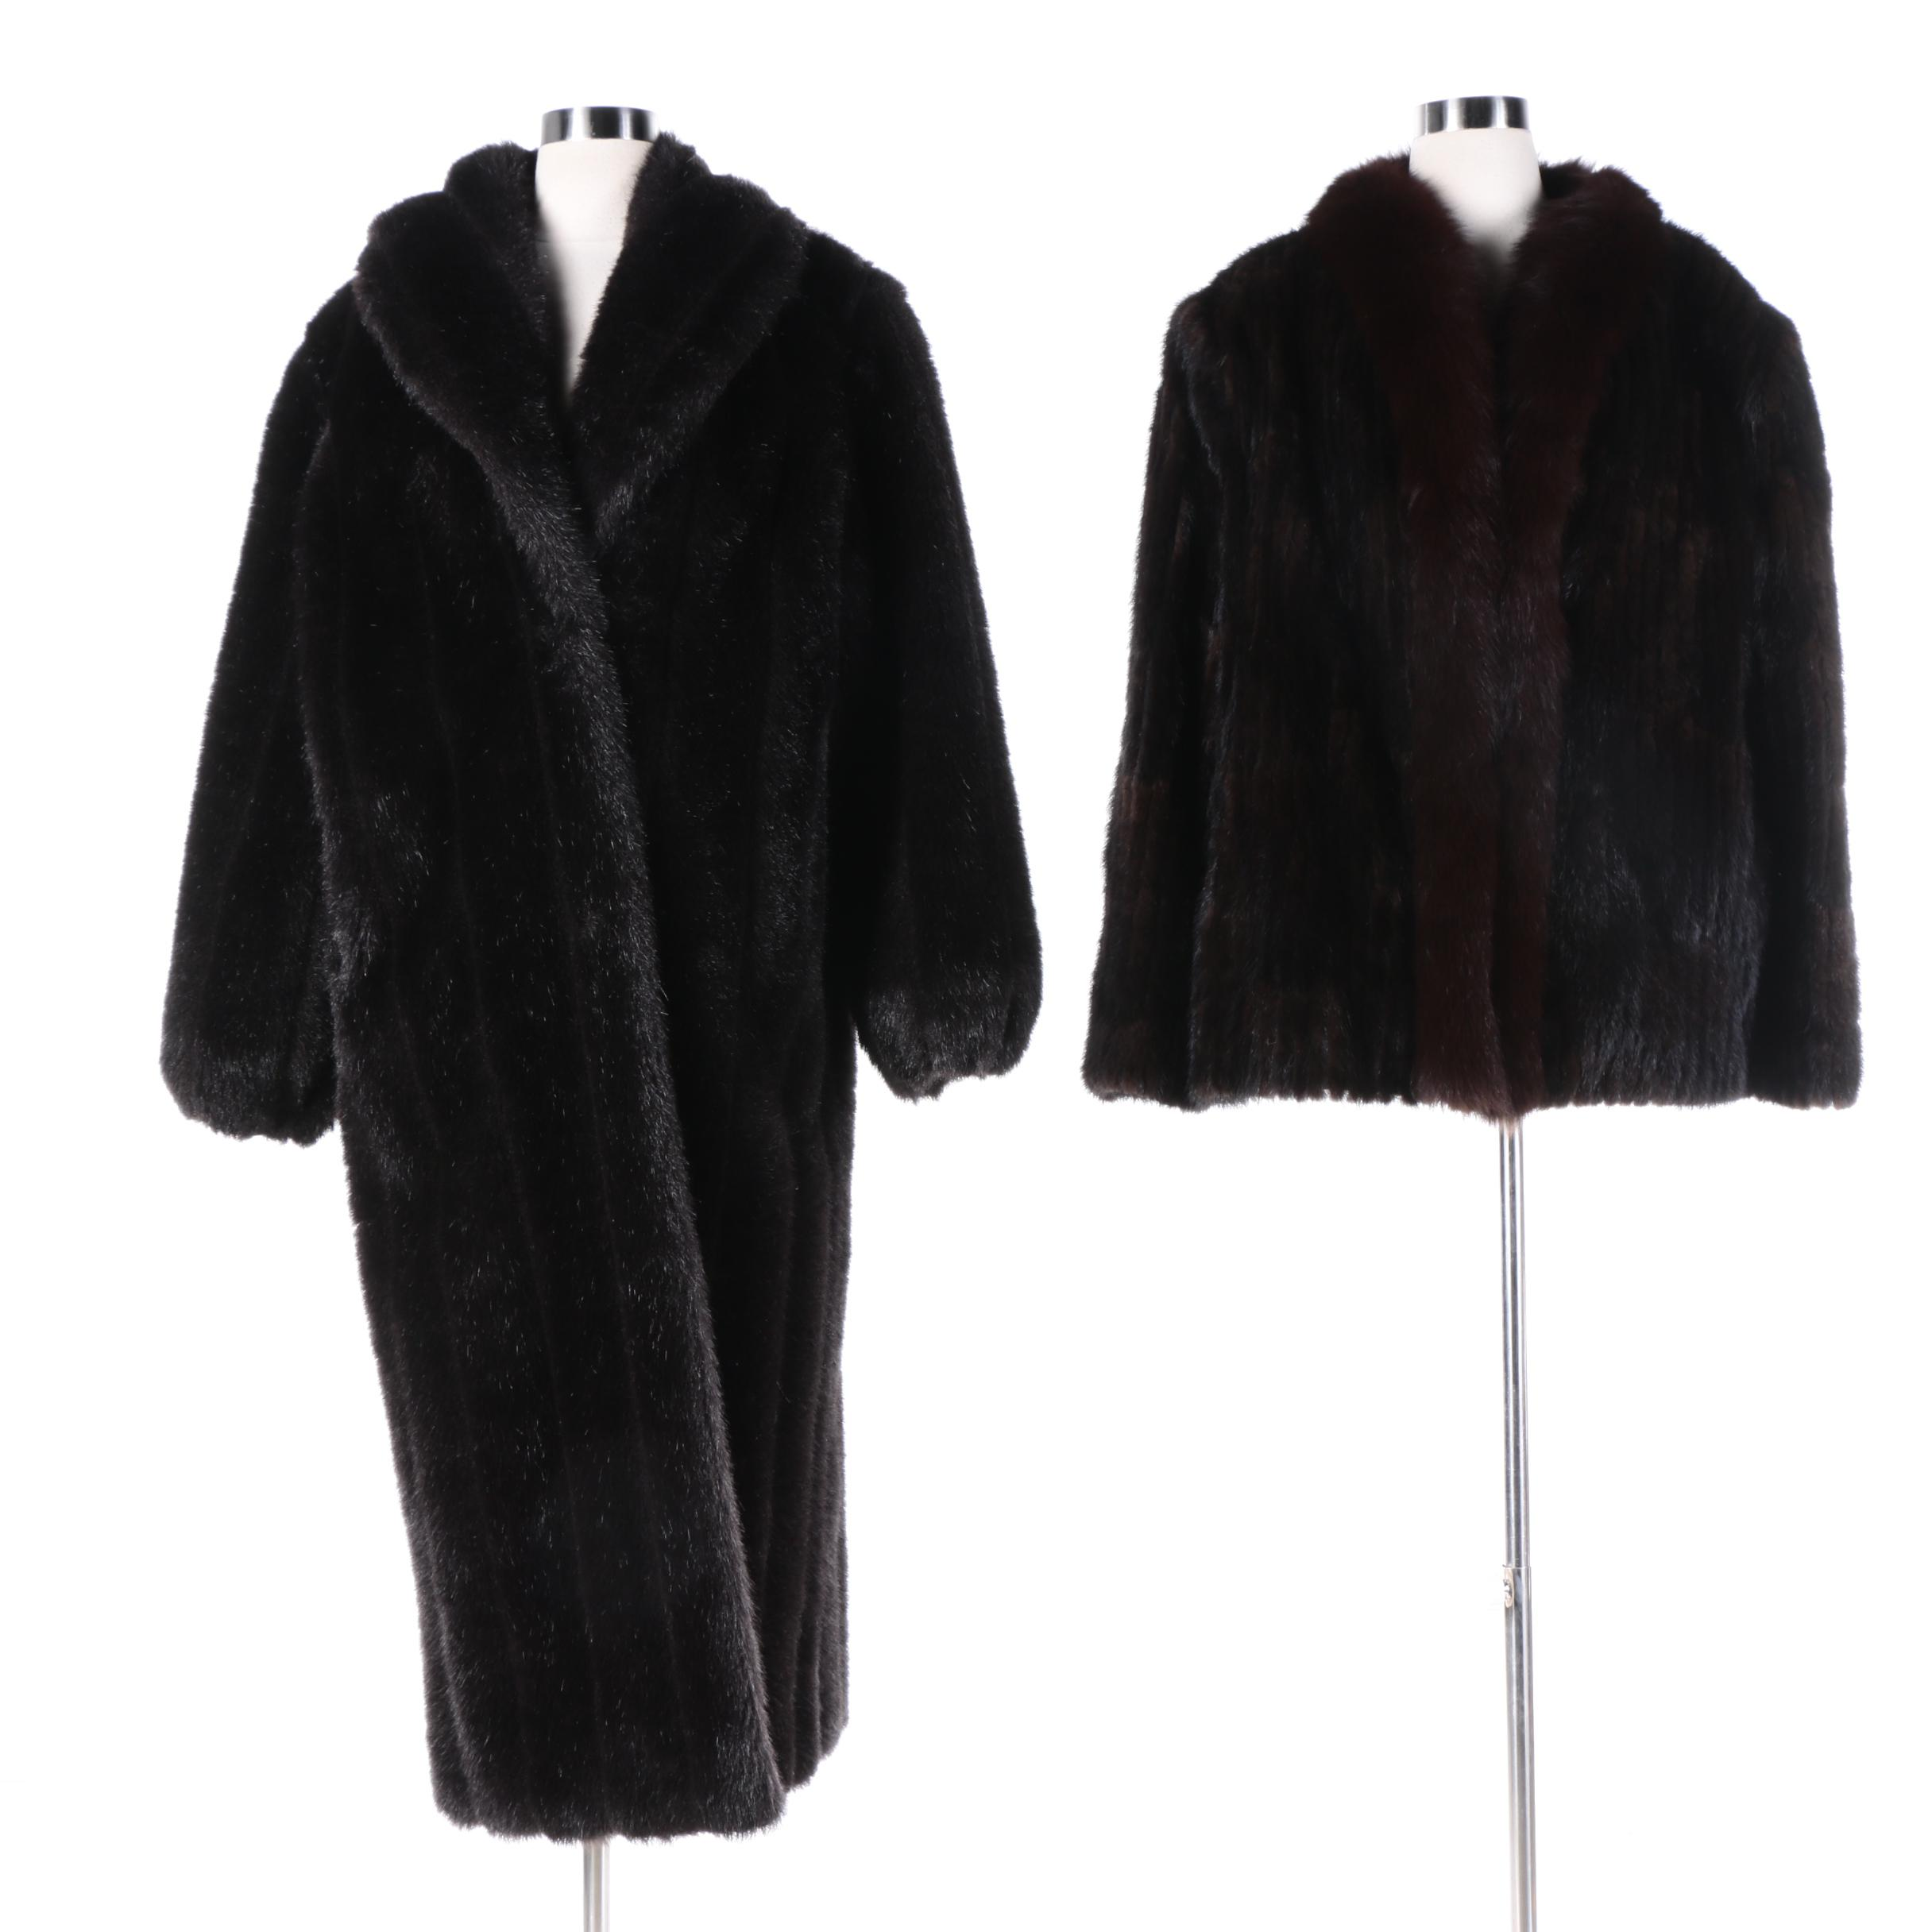 Saga Mink Fur Jacket and Monterey Fashions Faux Fur Coat   EBTH Saga Mink Fur Jacket and Monterey Fashions Faux Fur Coat